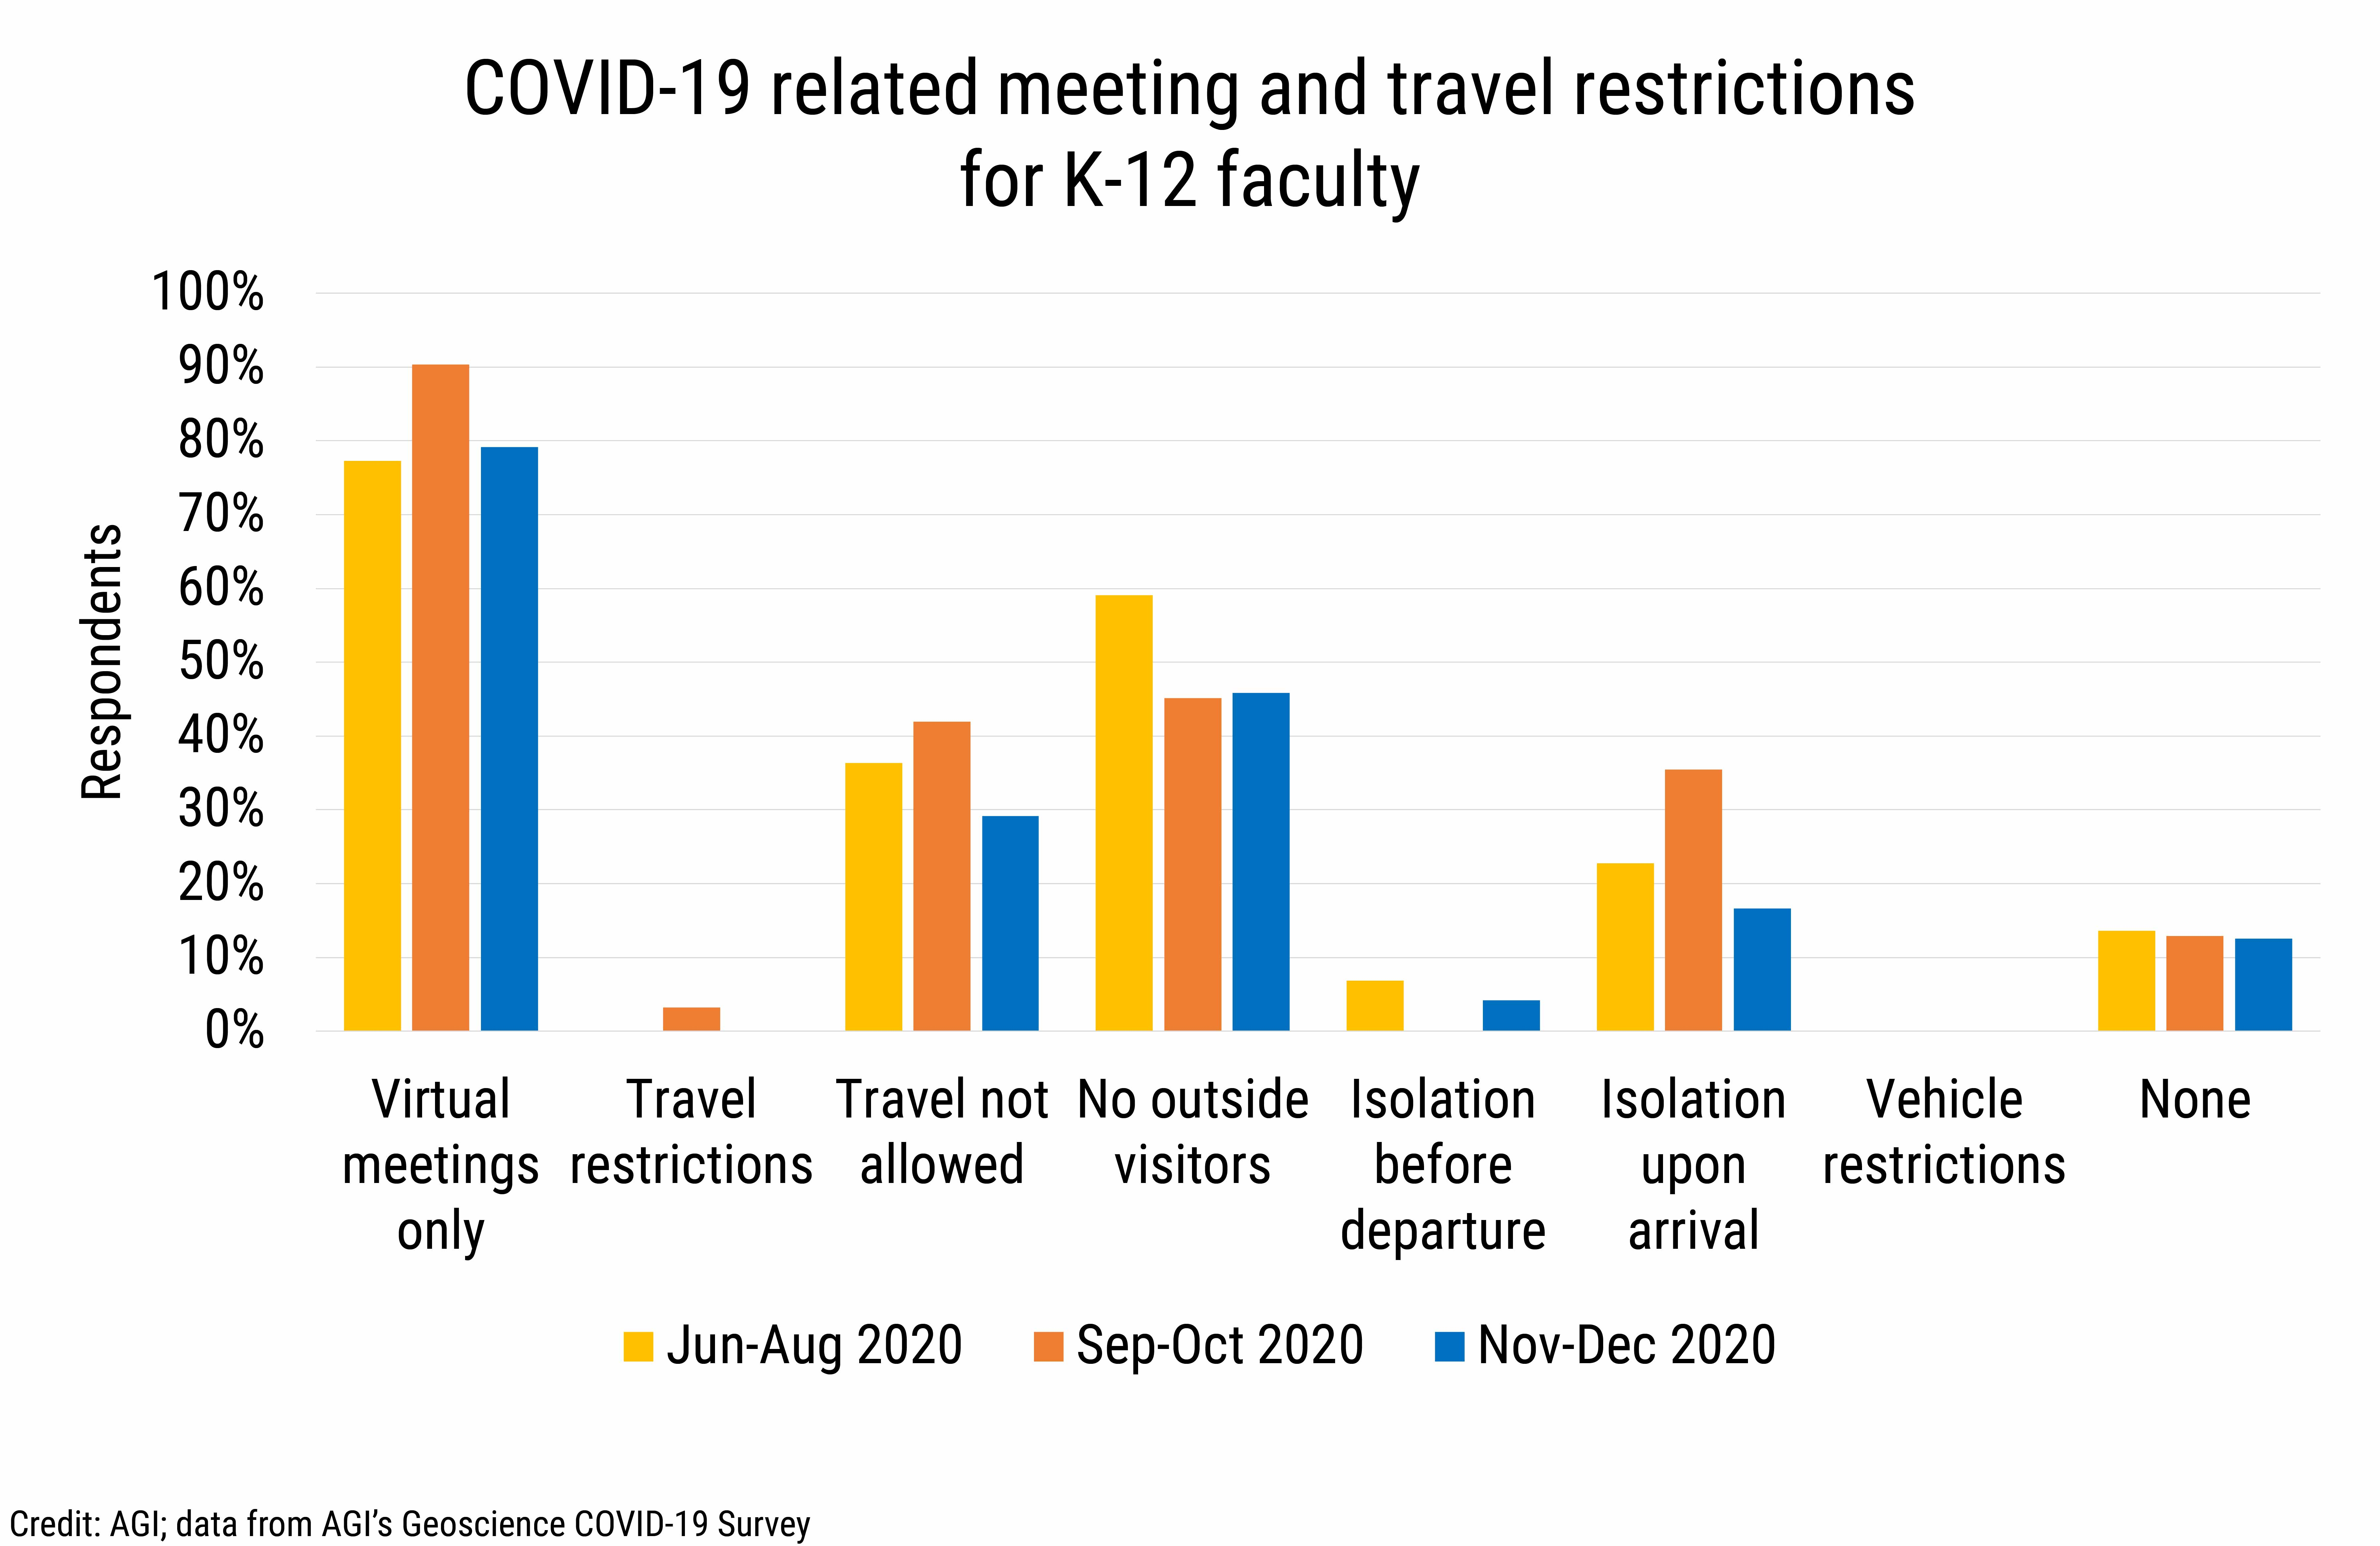 DB_2021-002 chart 14: COVID-19 related meeting and travel restrictions for K-12 faculty (Credit: AGI; data from AGI's Geoscience COVID-19 Survey)